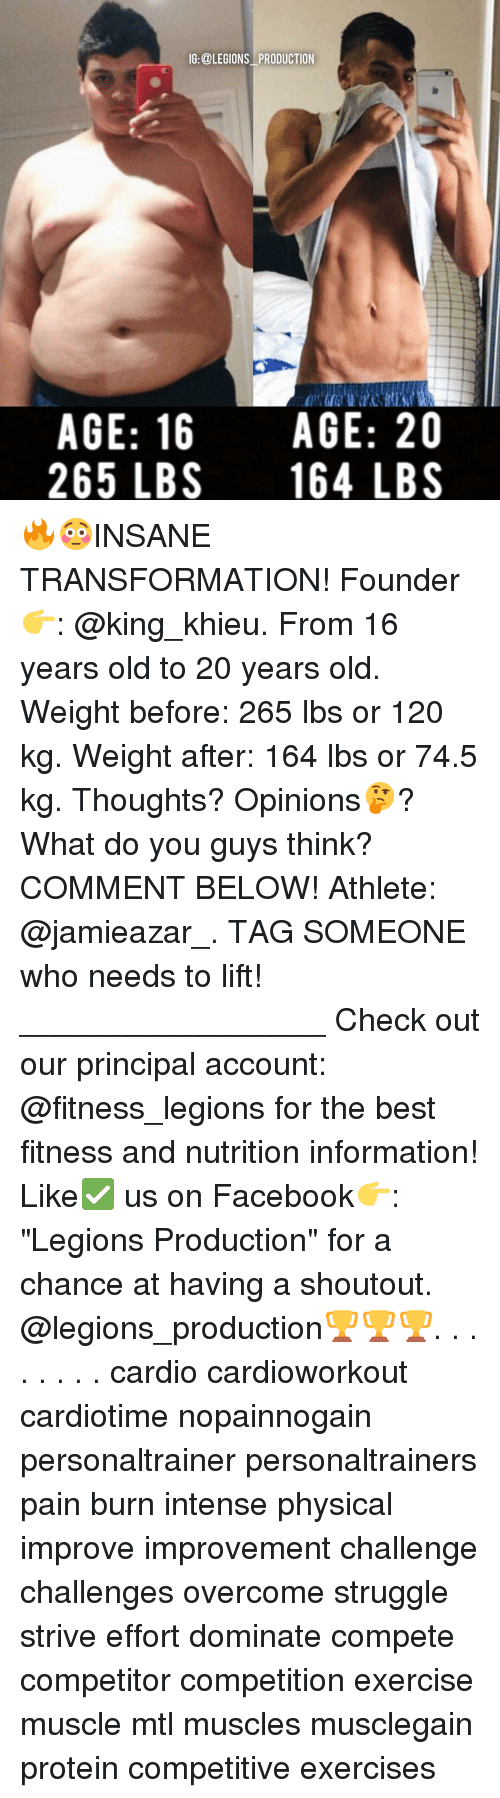 "Memes, Protein, and Struggle: IG:@LEGIONS PRODUCTION  AGE: 16  AGE: 20  265 LBS 164 LBS 🔥😳INSANE TRANSFORMATION! Founder 👉: @king_khieu. From 16 years old to 20 years old. Weight before: 265 lbs or 120 kg. Weight after: 164 lbs or 74.5 kg. Thoughts? Opinions🤔? What do you guys think? COMMENT BELOW! Athlete: @jamieazar_. TAG SOMEONE who needs to lift! _________________ Check out our principal account: @fitness_legions for the best fitness and nutrition information! Like✅ us on Facebook👉: ""Legions Production"" for a chance at having a shoutout. @legions_production🏆🏆🏆. . . . . . . . cardio cardioworkout cardiotime nopainnogain personaltrainer personaltrainers pain burn intense physical improve improvement challenge challenges overcome struggle strive effort dominate compete competitor competition exercise muscle mtl muscles musclegain protein competitive exercises"